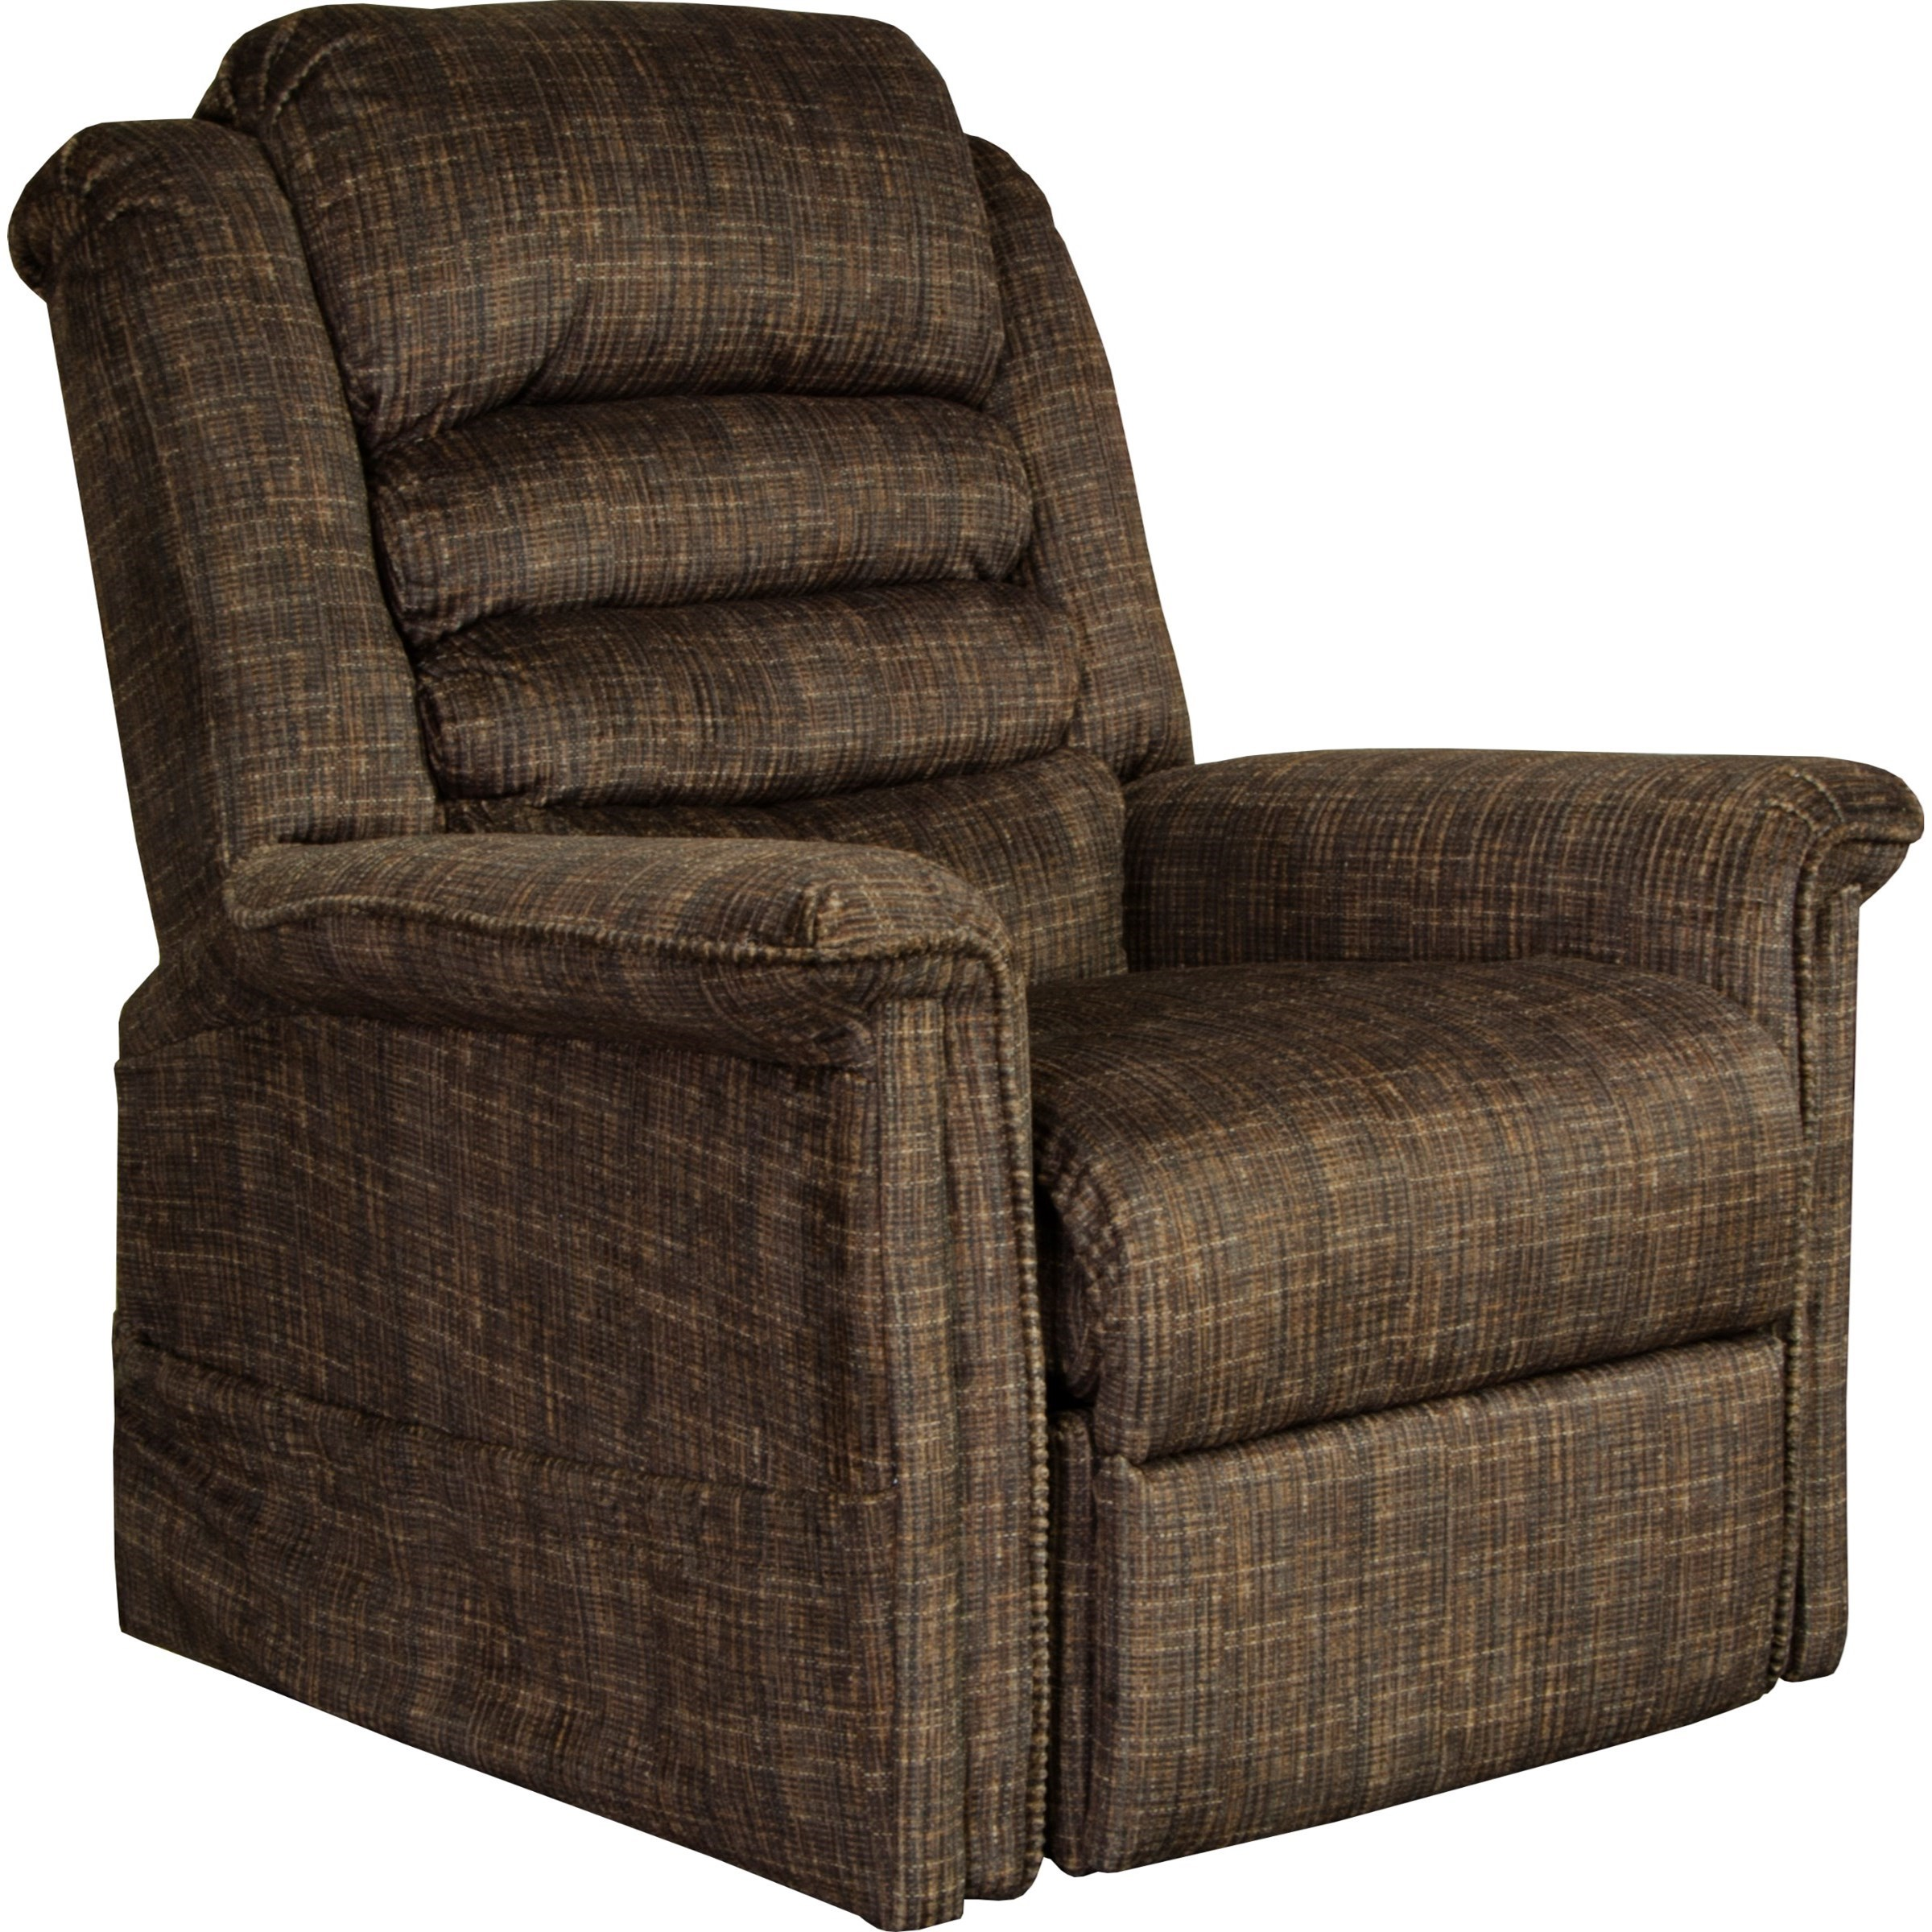 4825 Power Lift Recliner by Catnapper at Value City Furniture